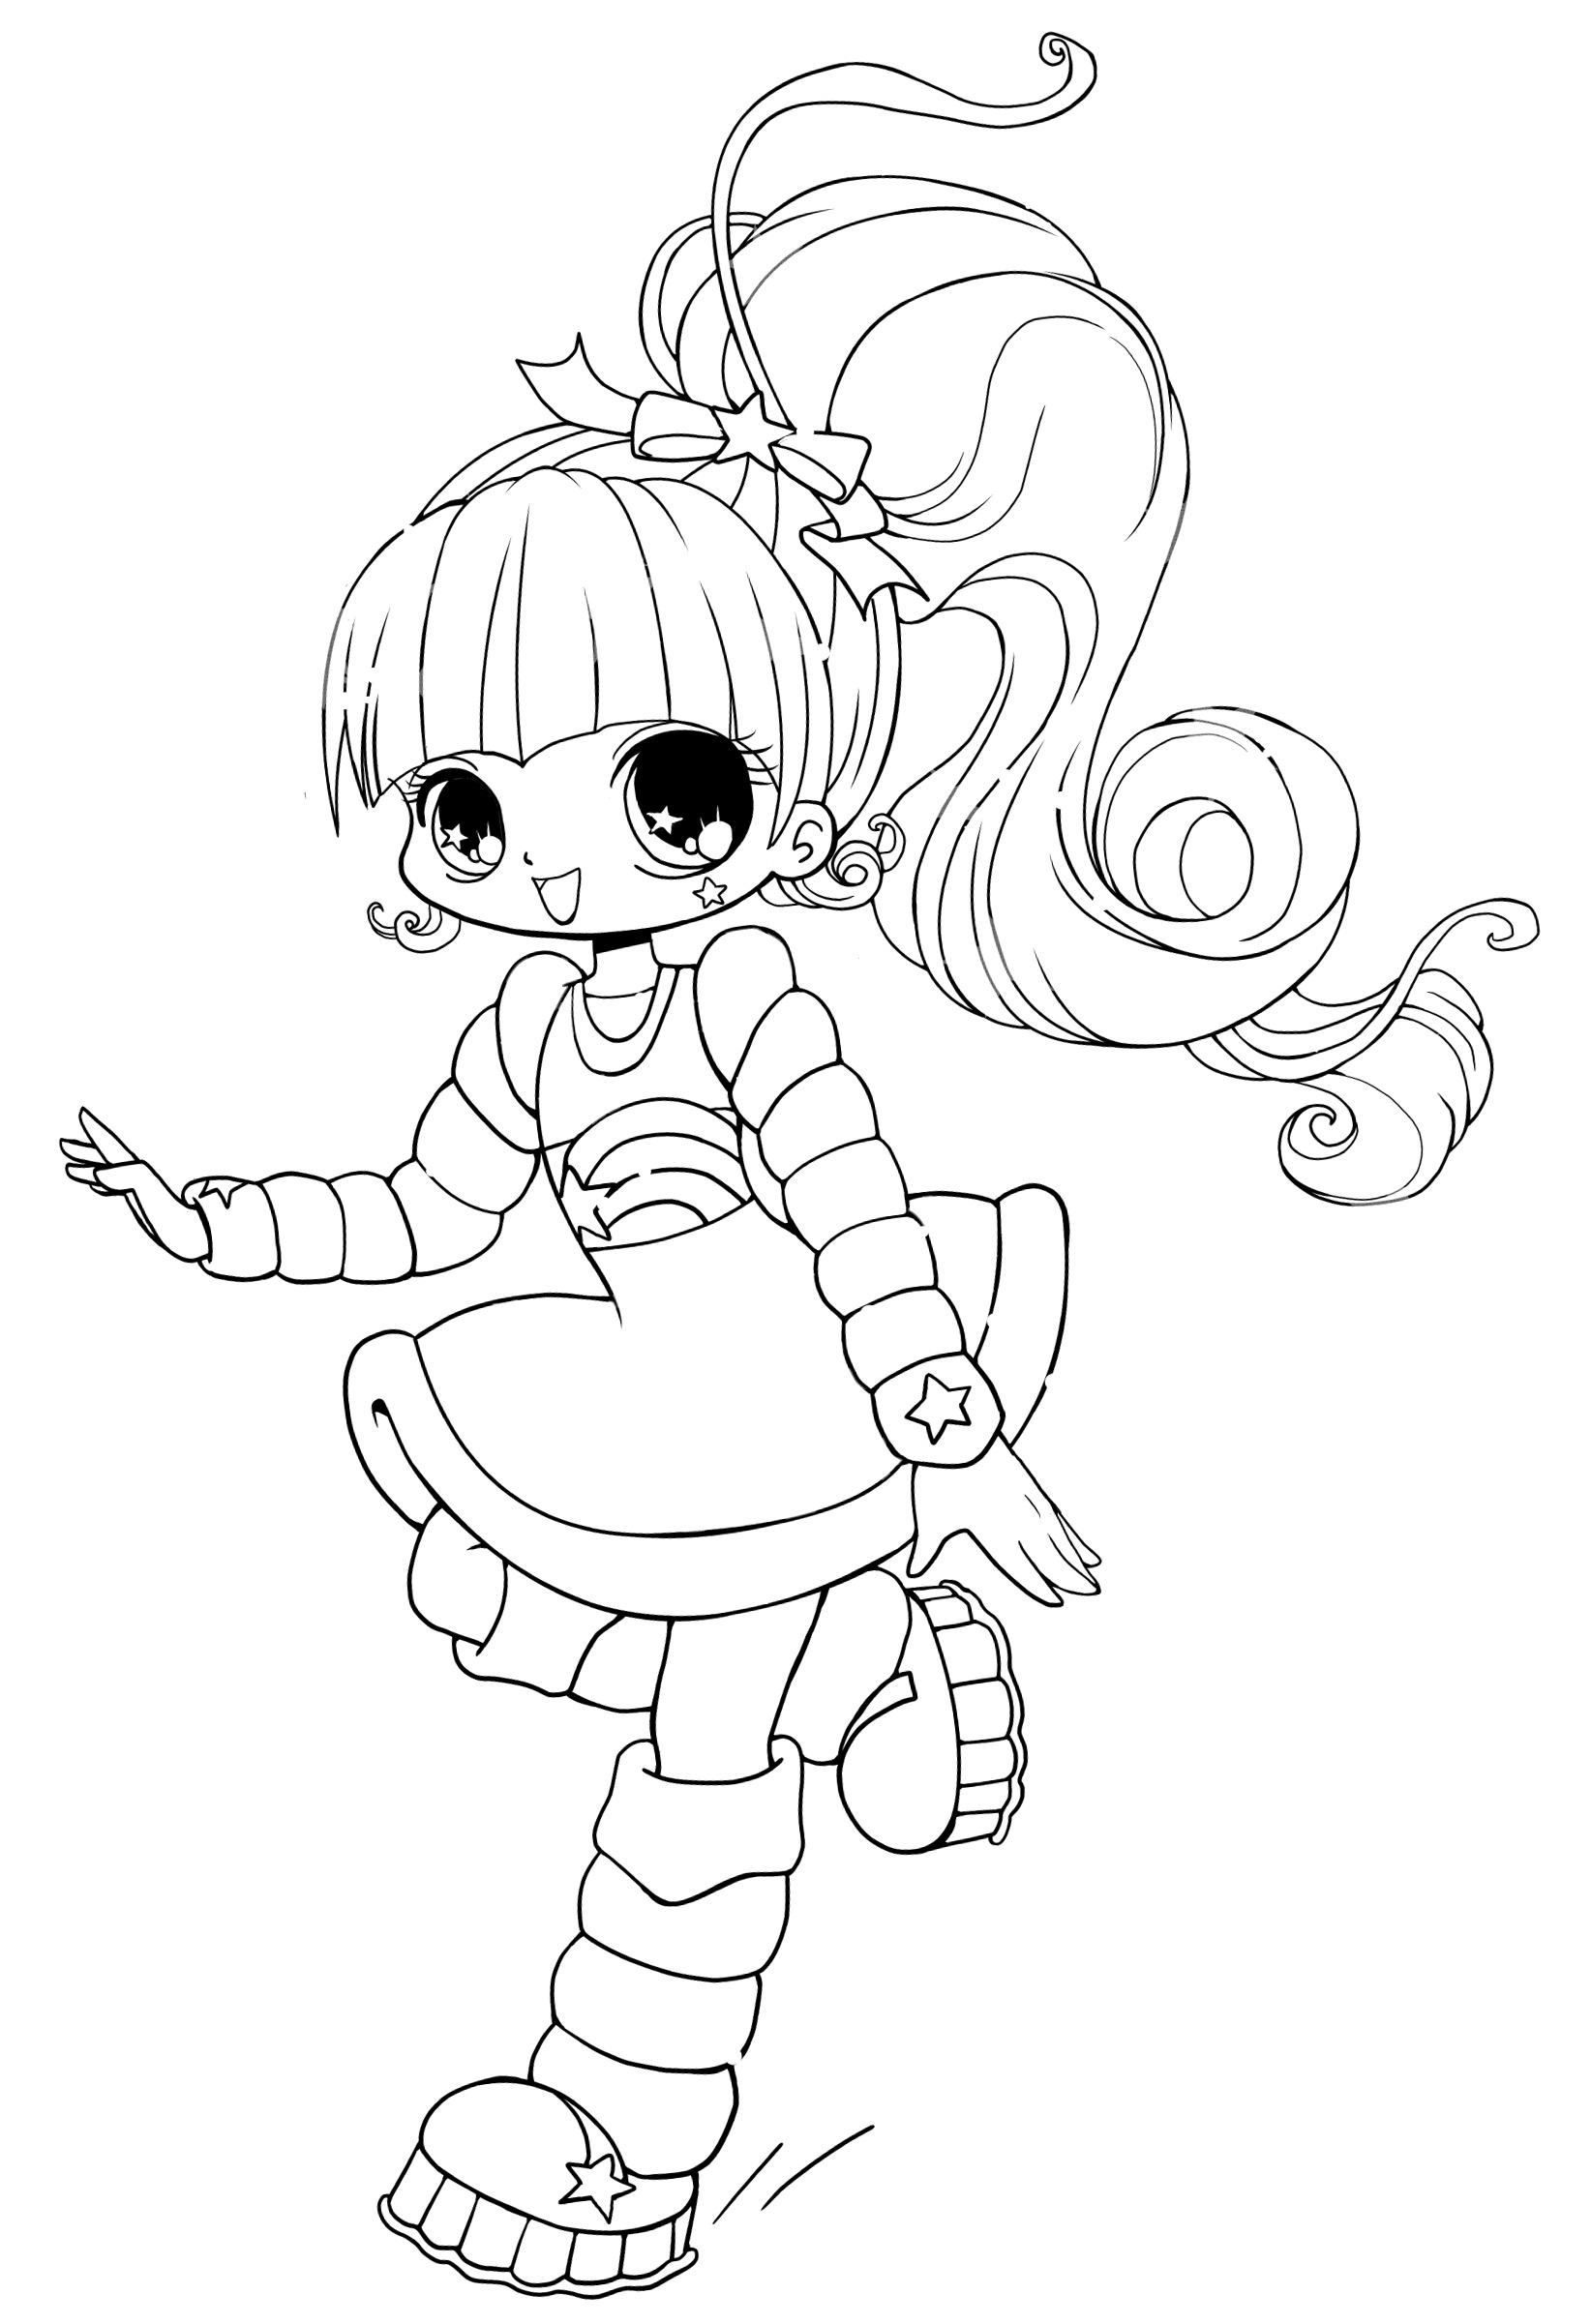 chibi girls coloring pages chibi coloring pages to download and print for free coloring pages girls chibi